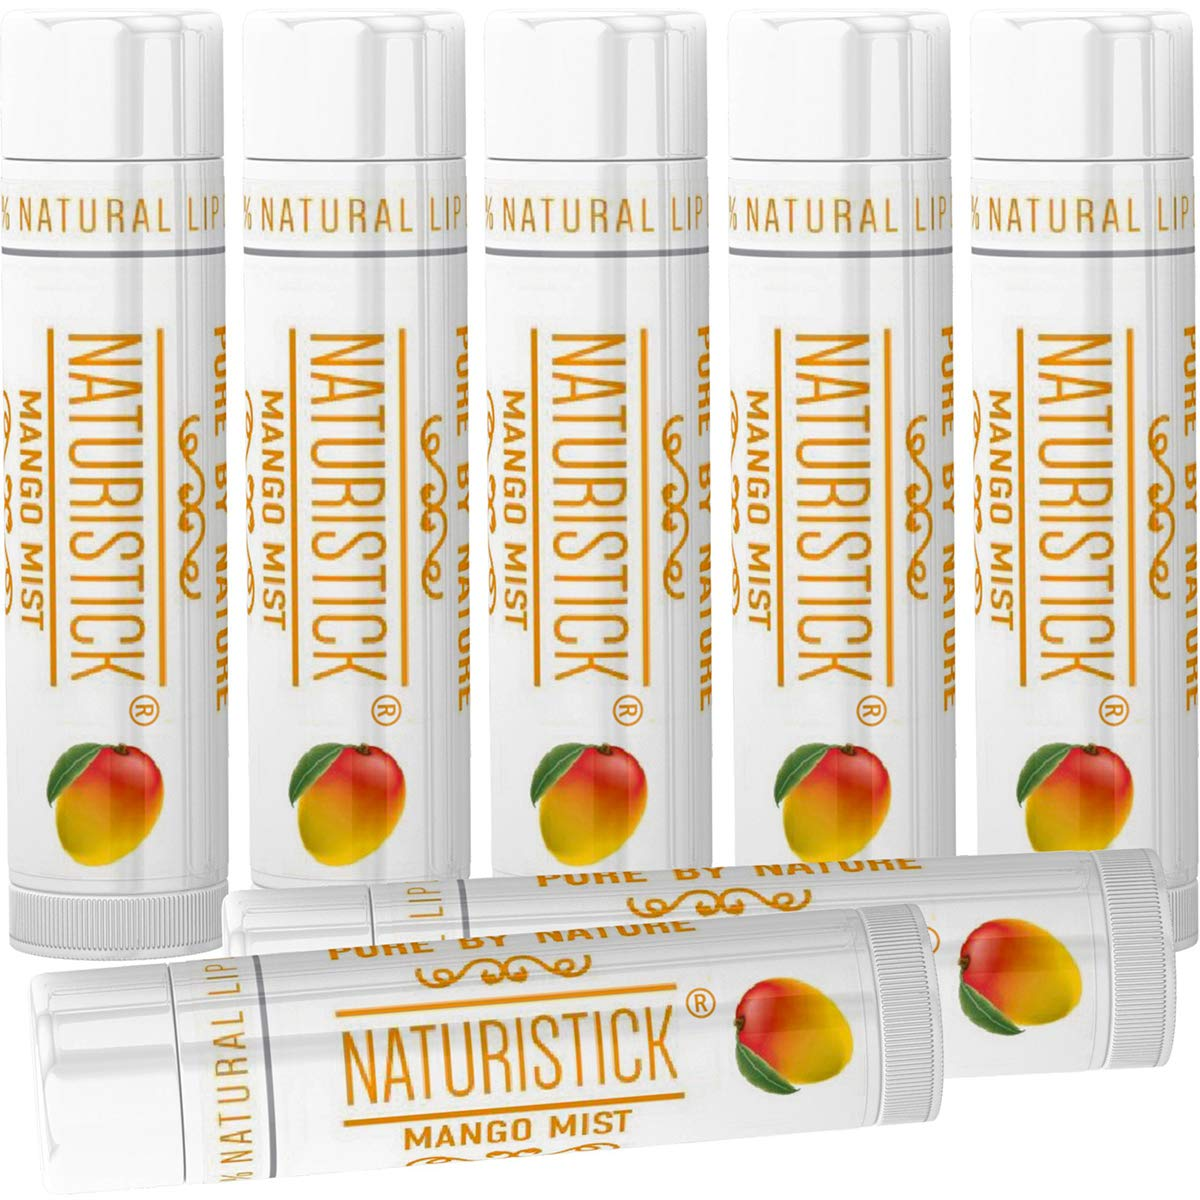 Mango Lip Balm Gift Set (7 Pack) by Naturistick. Best All-Natural Beeswax Chapstick for Healing Dry, Chapped Lips. Made with Aloe Vera, Vitamin E, Coconut Oil for Men, Women and Kids. Made in USA